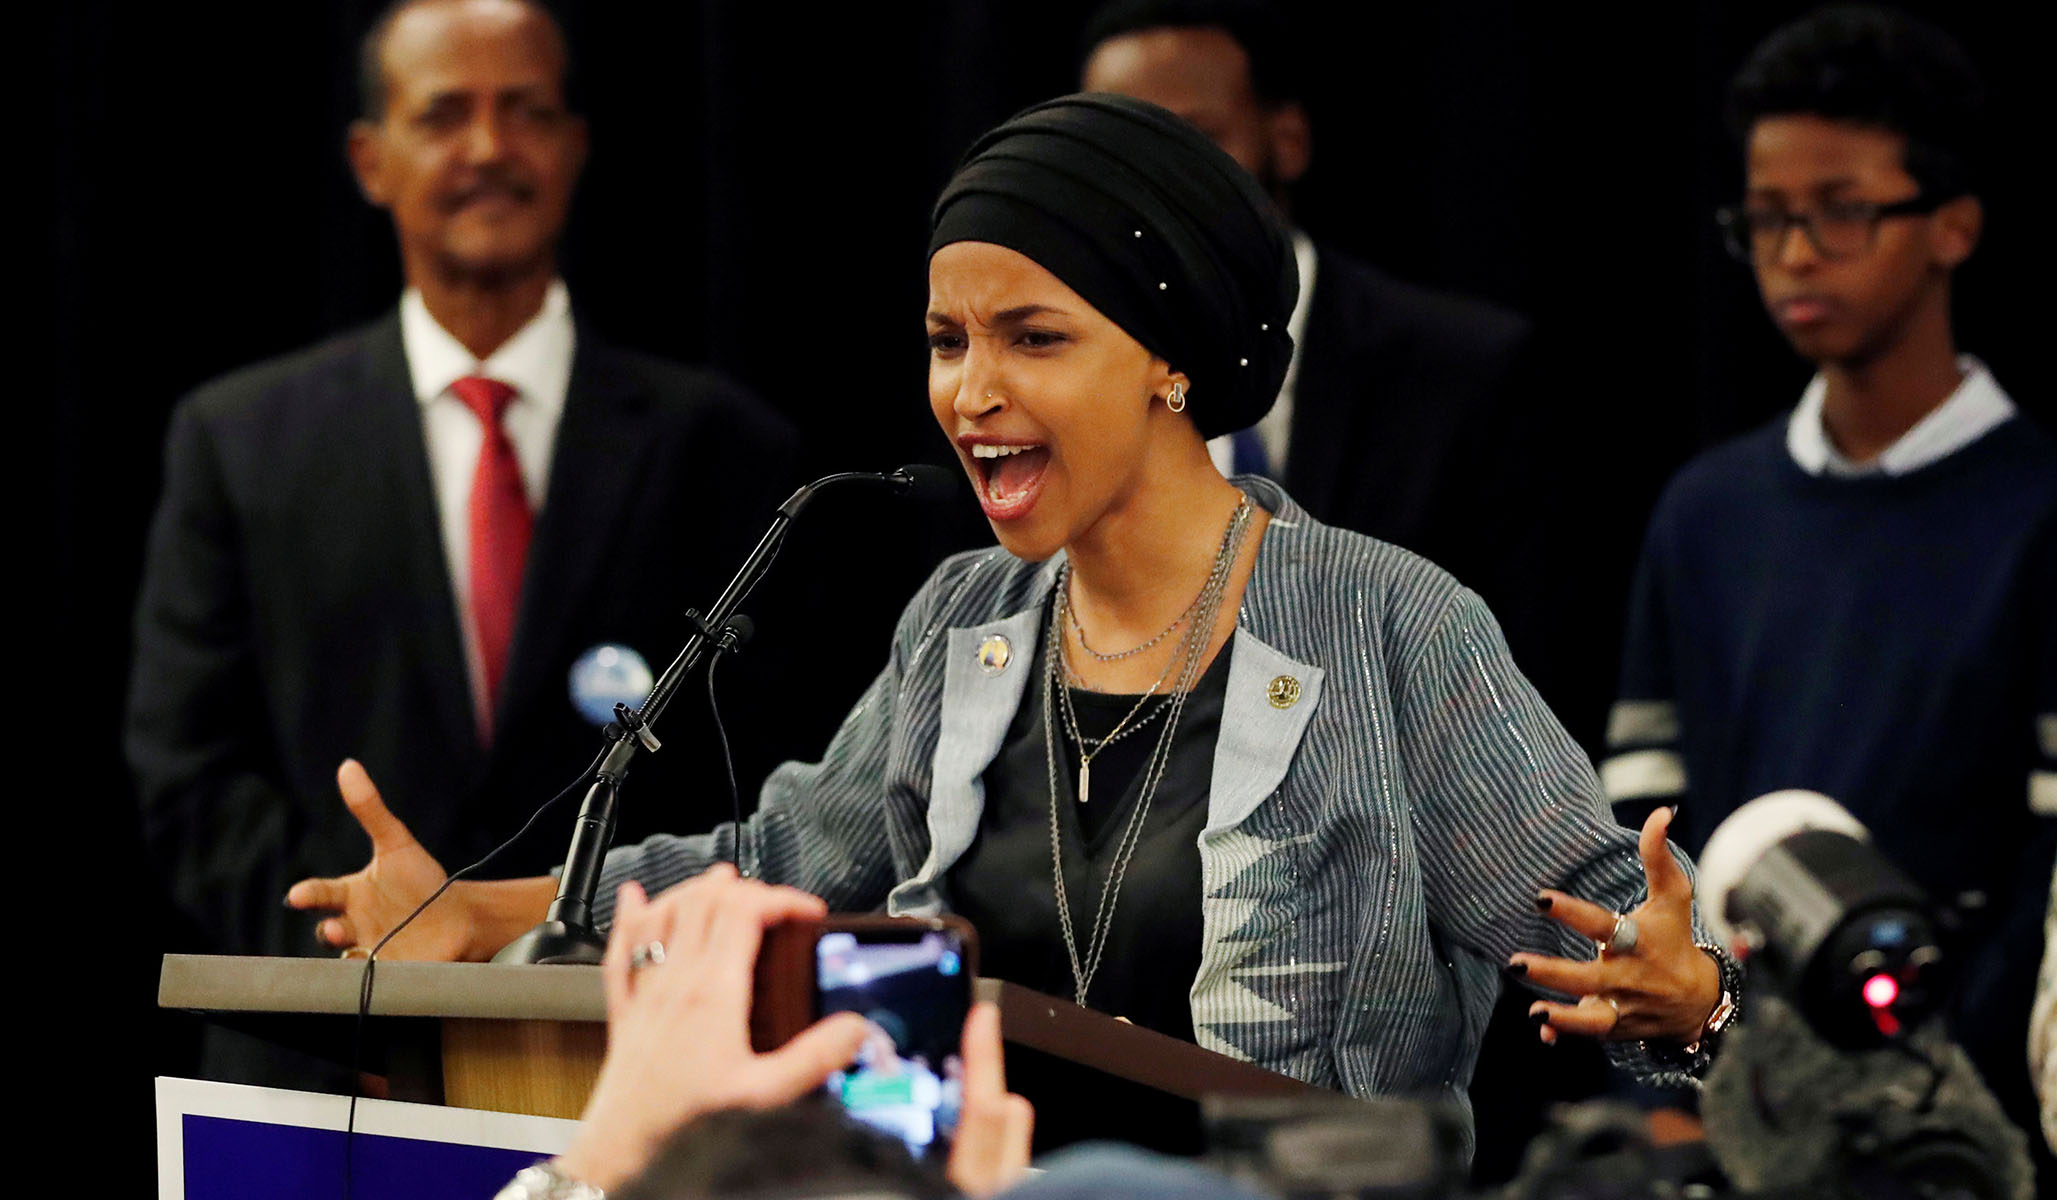 Ilhan Omar Accuses Trump of Emboldening Racists